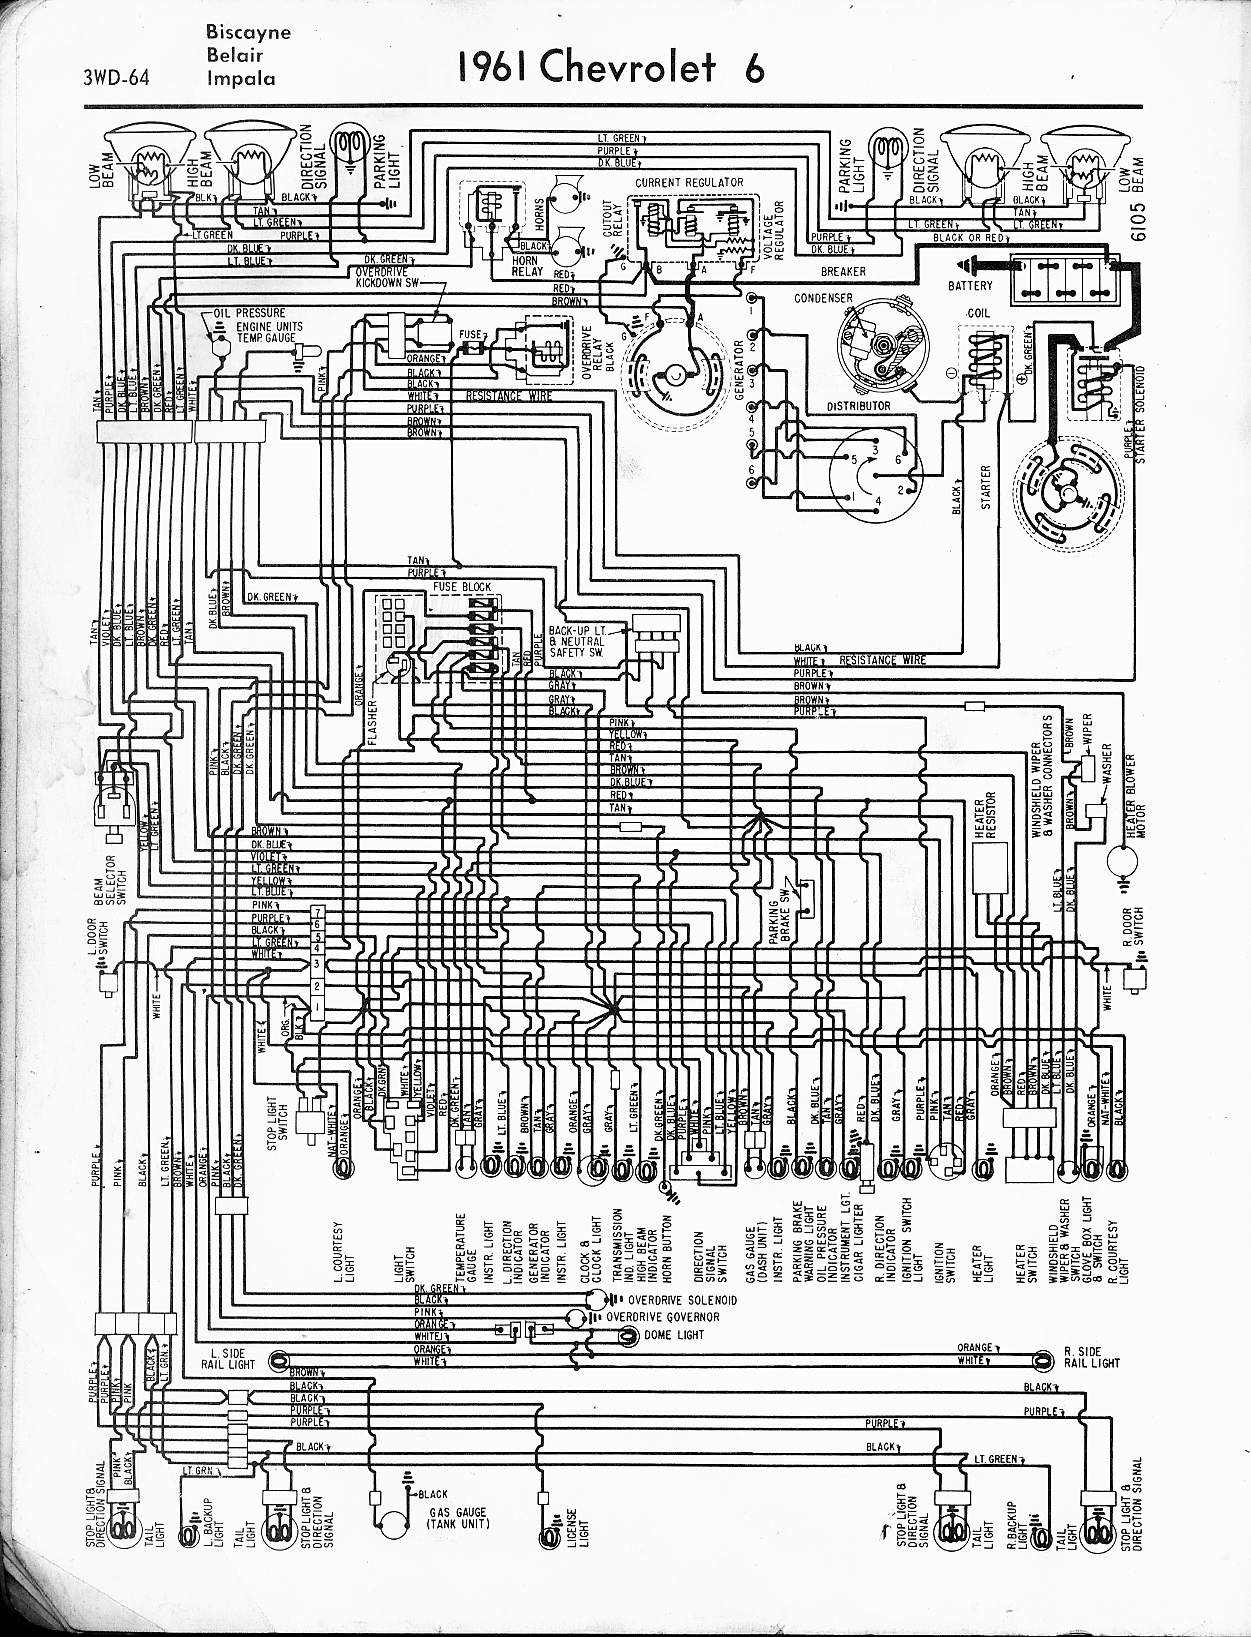 57 65 chevy wiring diagrams rh oldcarmanualproject com wiring diagram 1963 chevrolet impala wiring diagram for chevy impala 2006